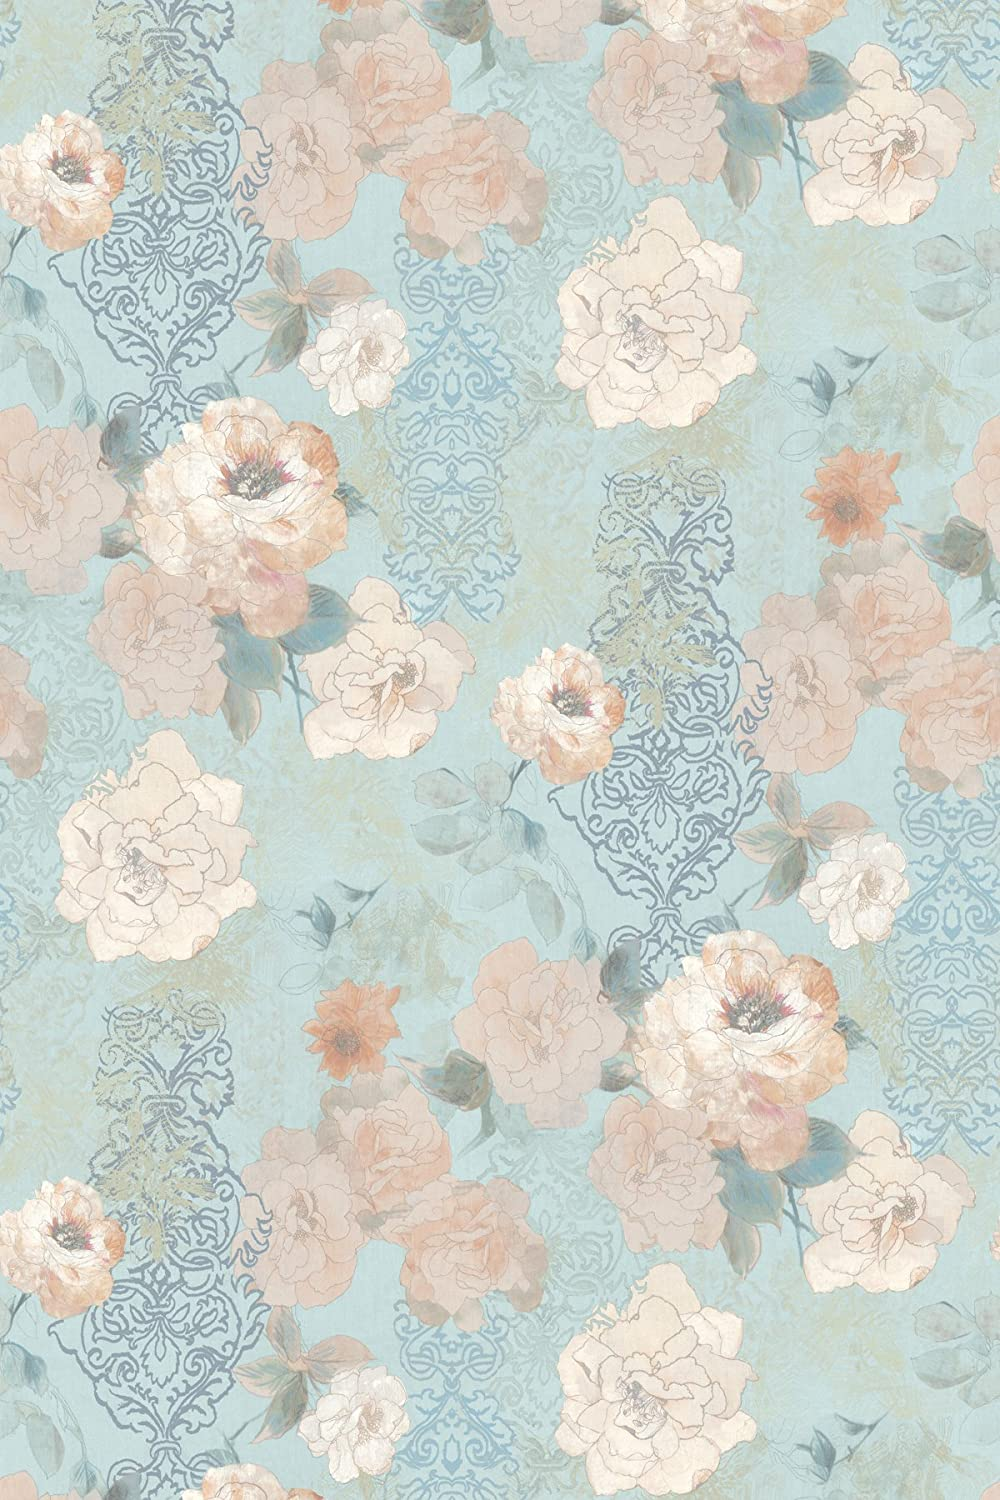 Wallpaper Mural Blue Floral Wallpaper Pink Floral Wallpaper Rose